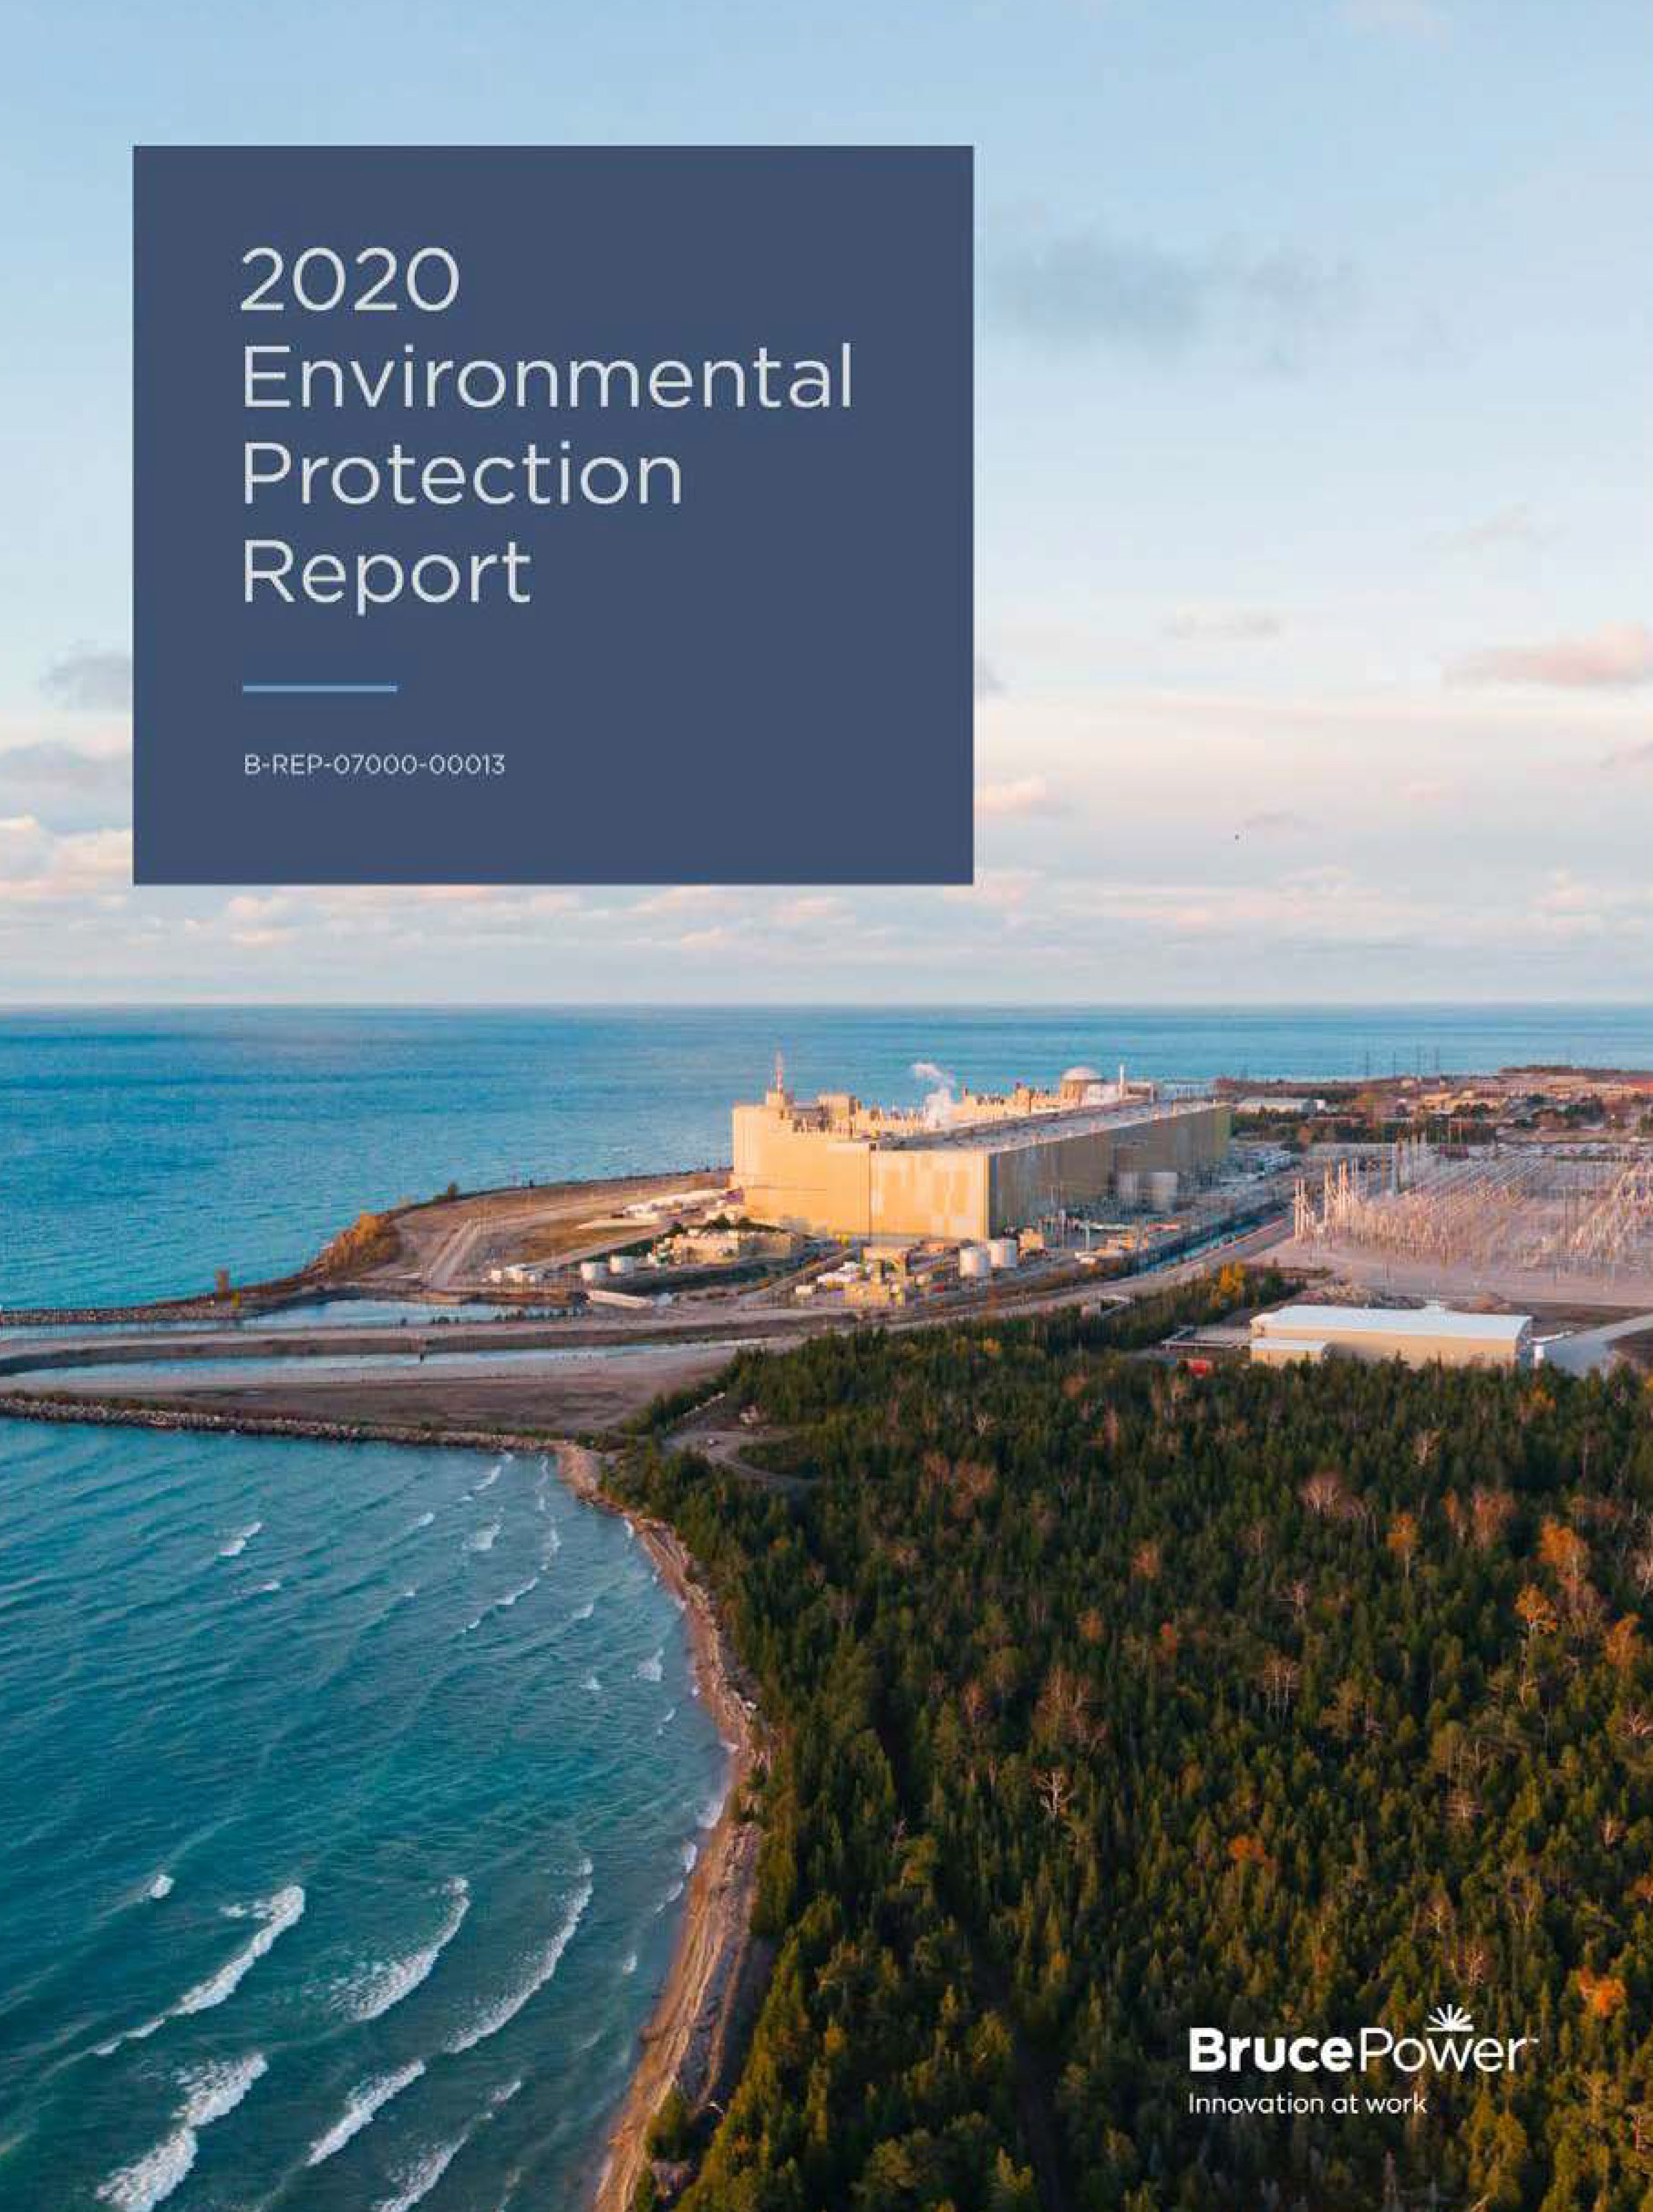 2020 Environmental Protection Report